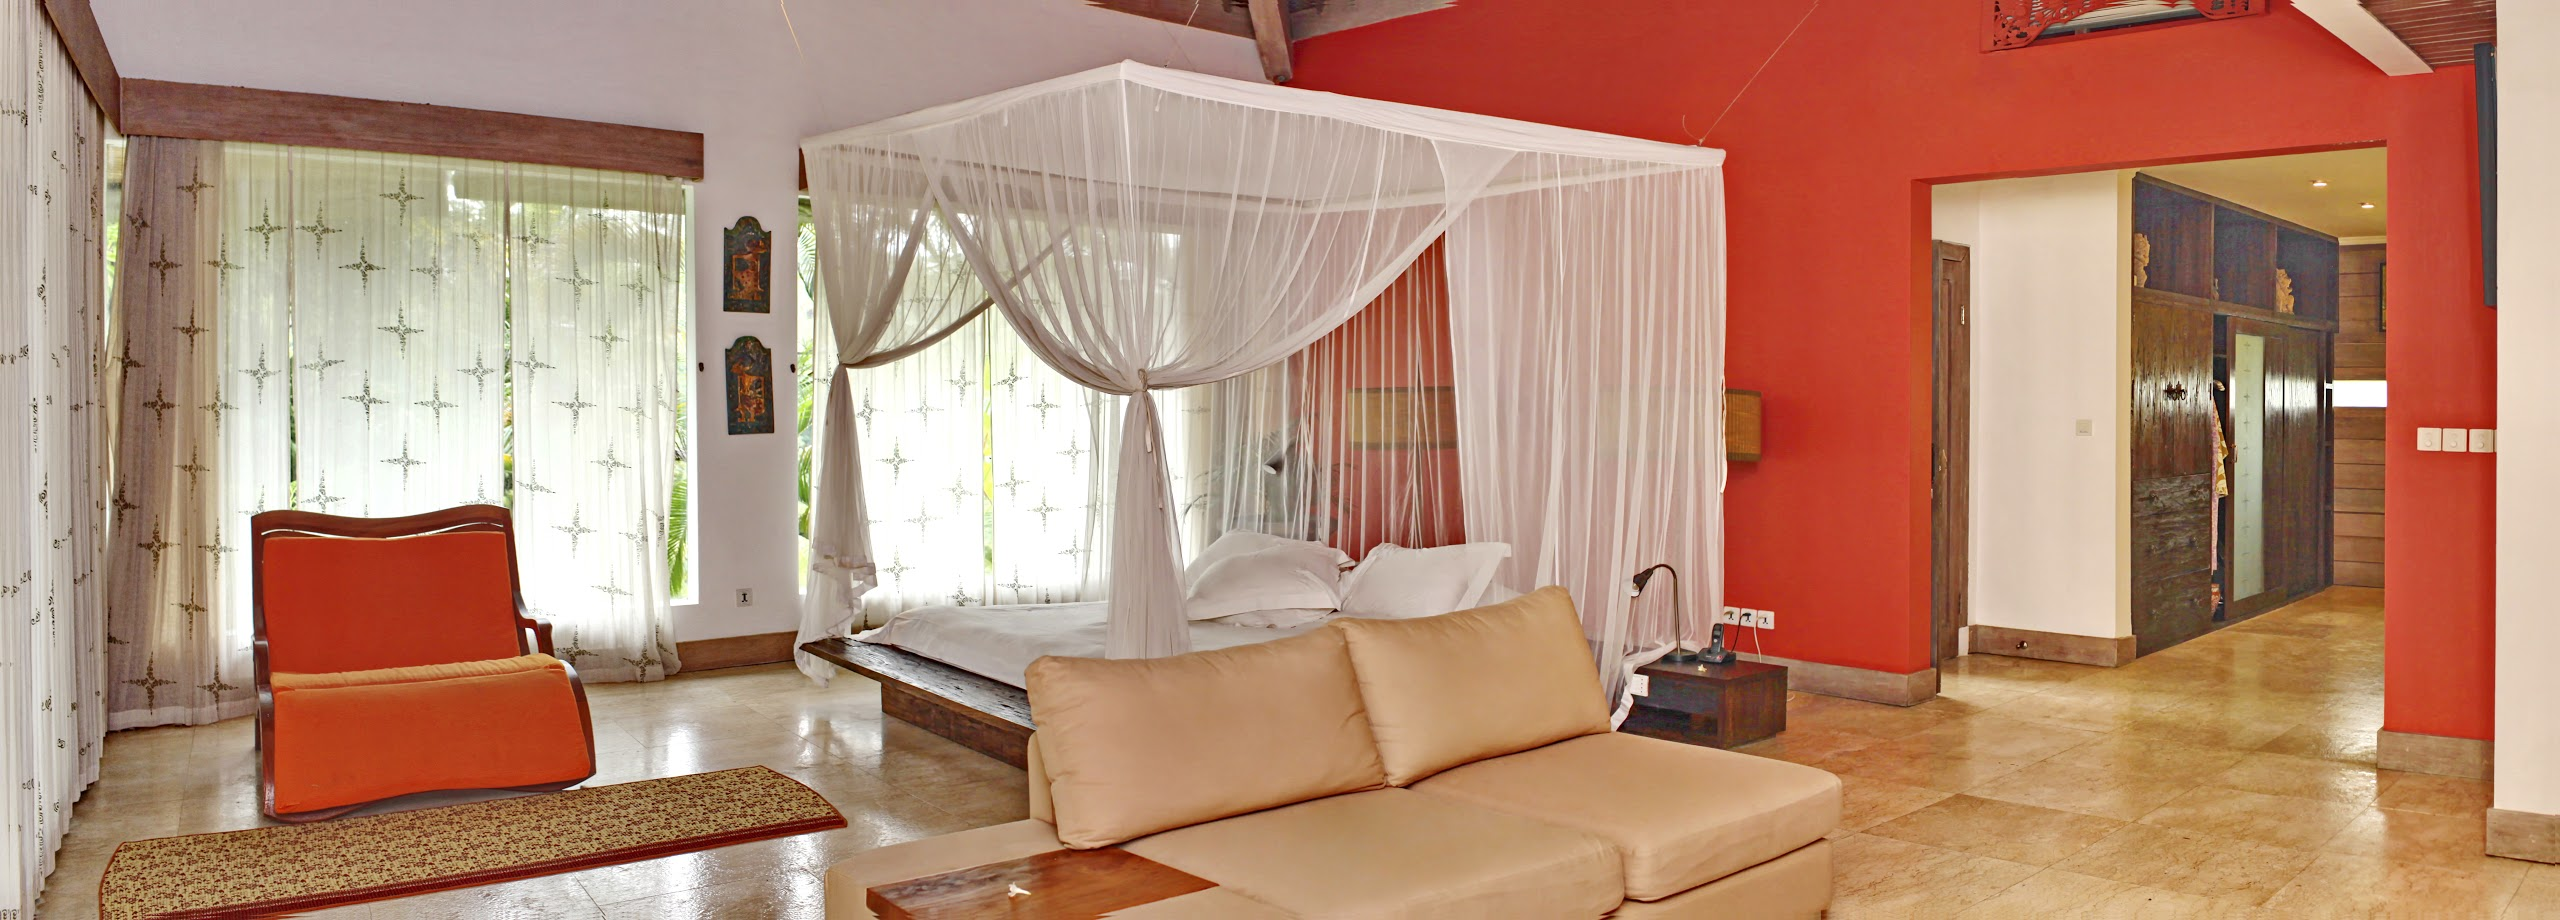 Amazing Private Resort In The Heart Ubud [5 star rated on